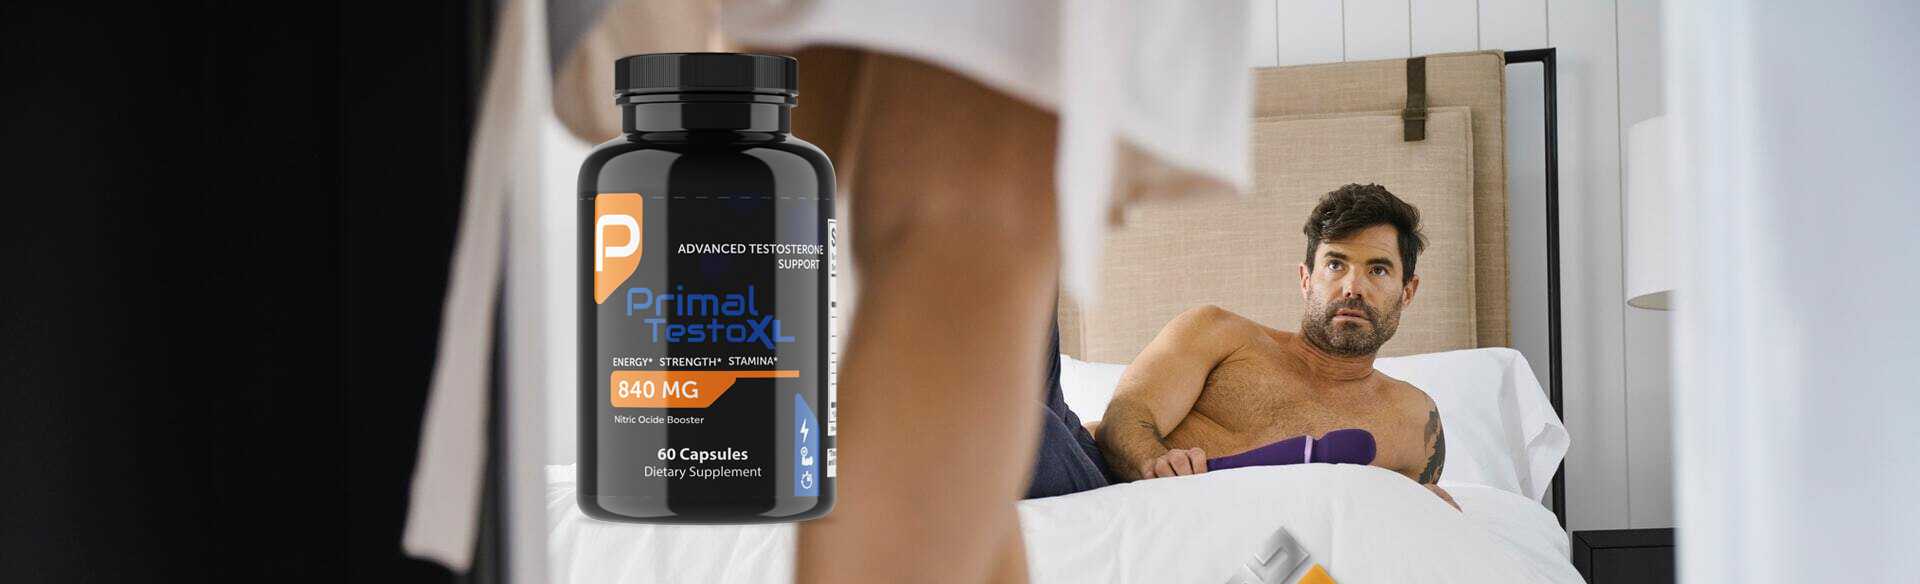 Primal TestoXL Advanced Testosterone Support - It Really Work & Safe?